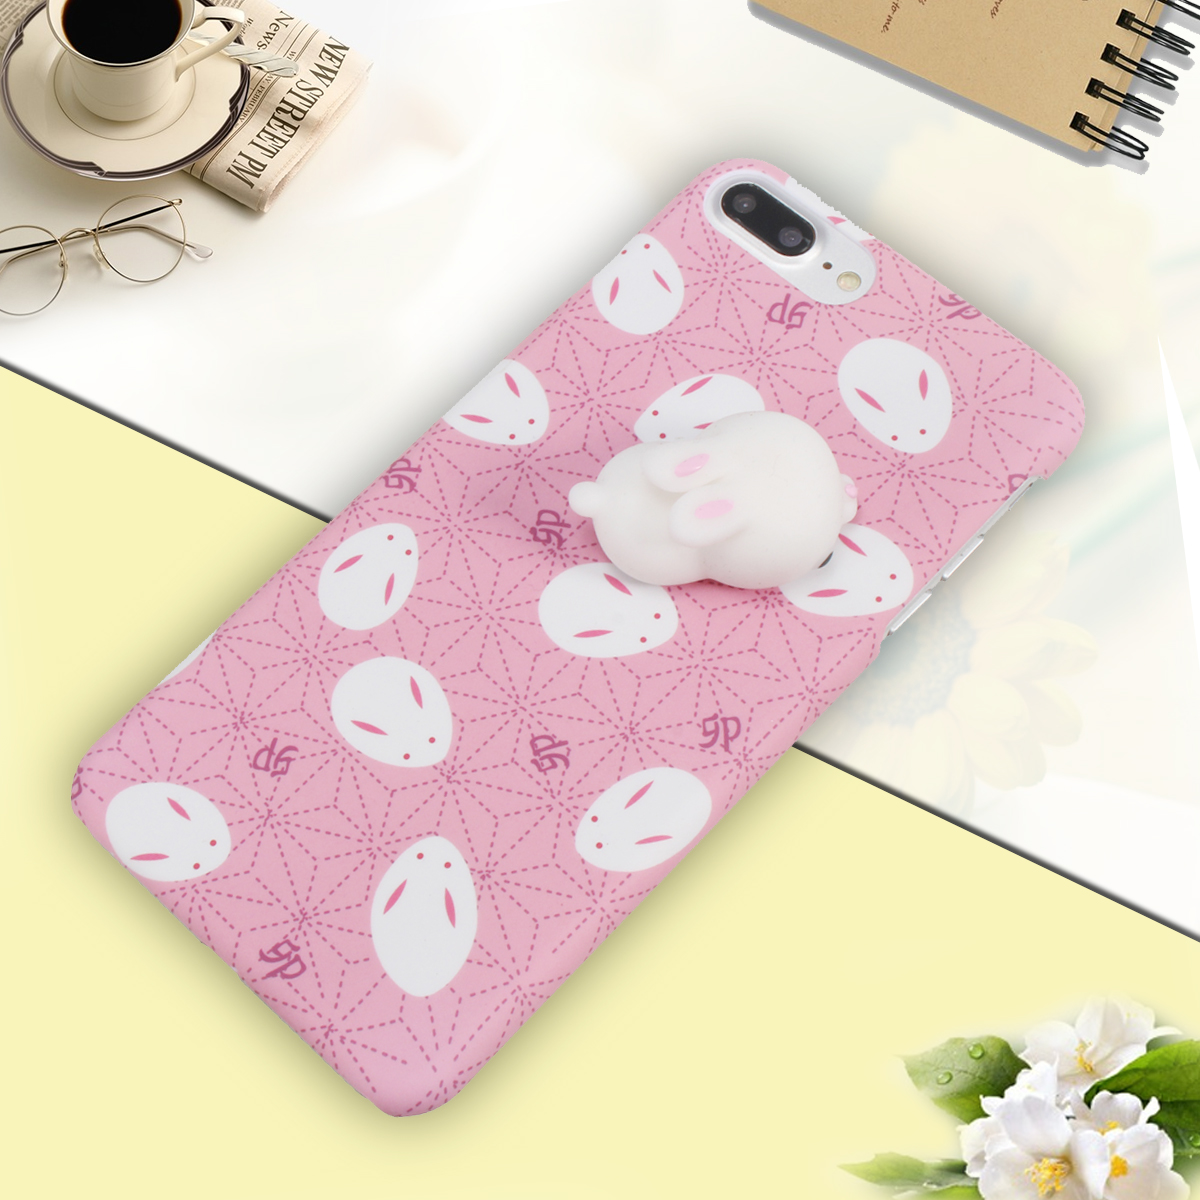 Squishy Cases Iphone 7 : Squishy 3D Cartoon Silicone Soft Animal Cover Case For iPhone 7 Plus / iPhone 7 eBay